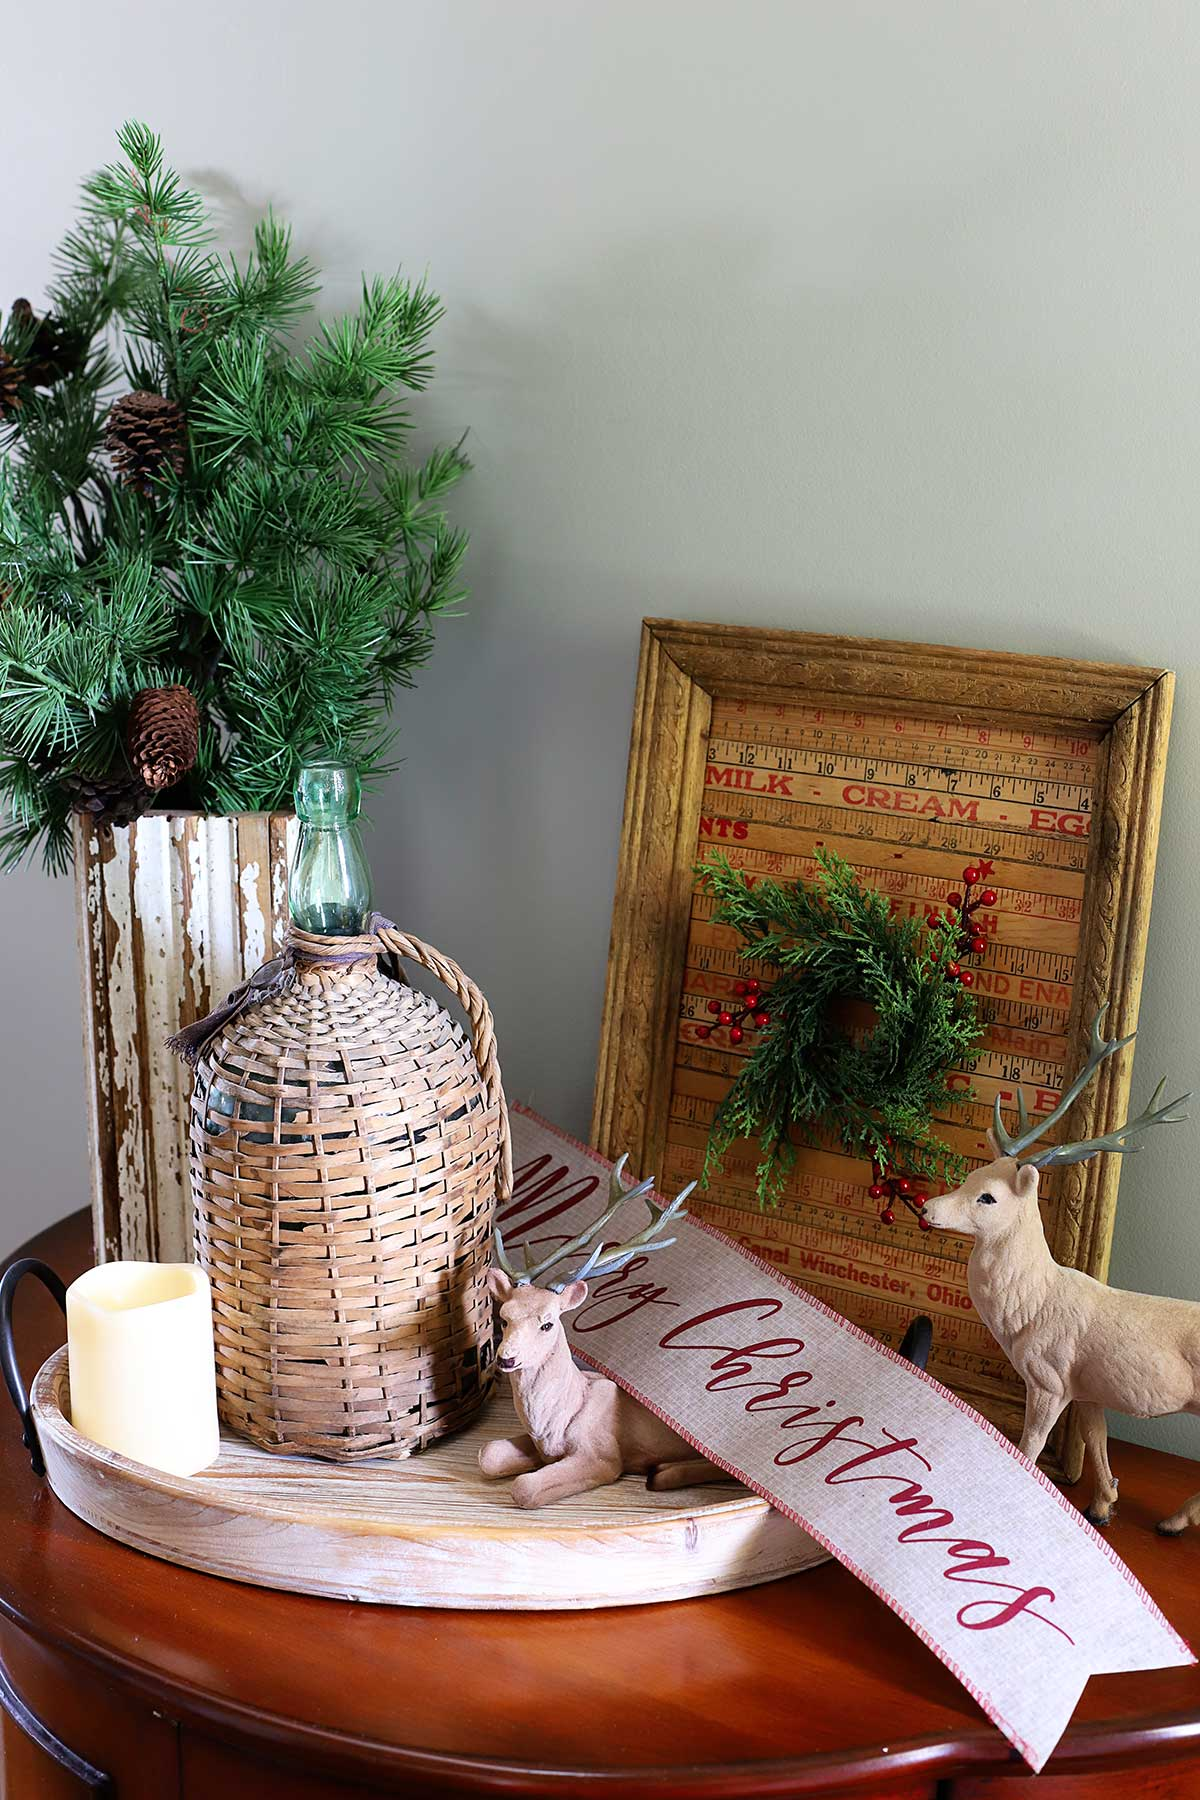 French country Christmas vignette with deer and demijohn